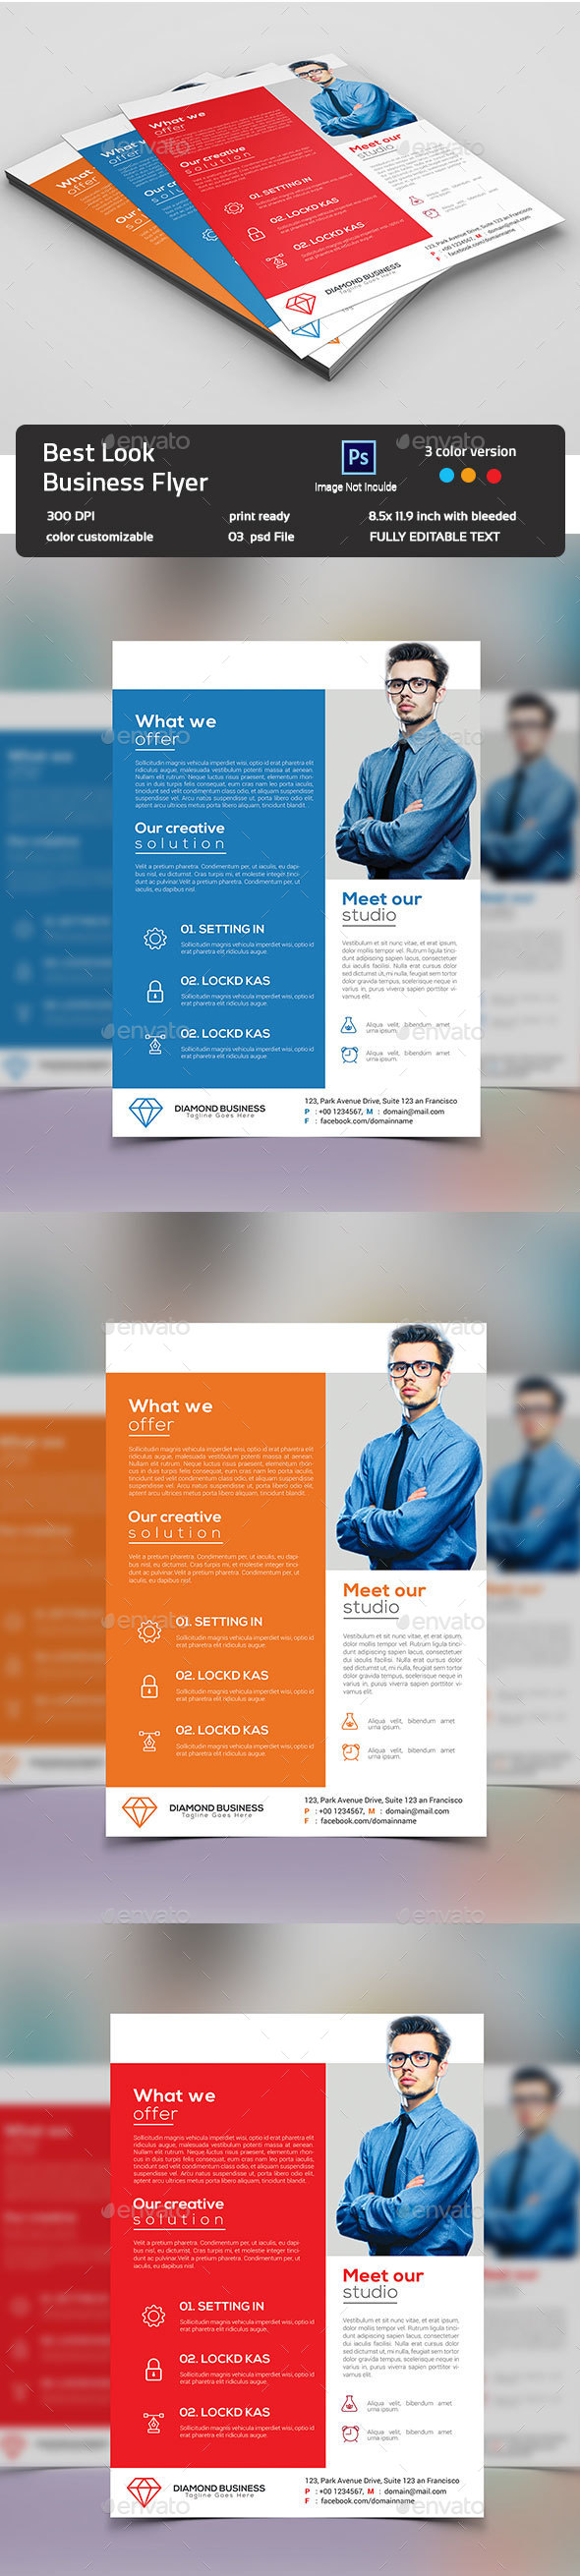 Look Business Flyer - Corporate Flyers